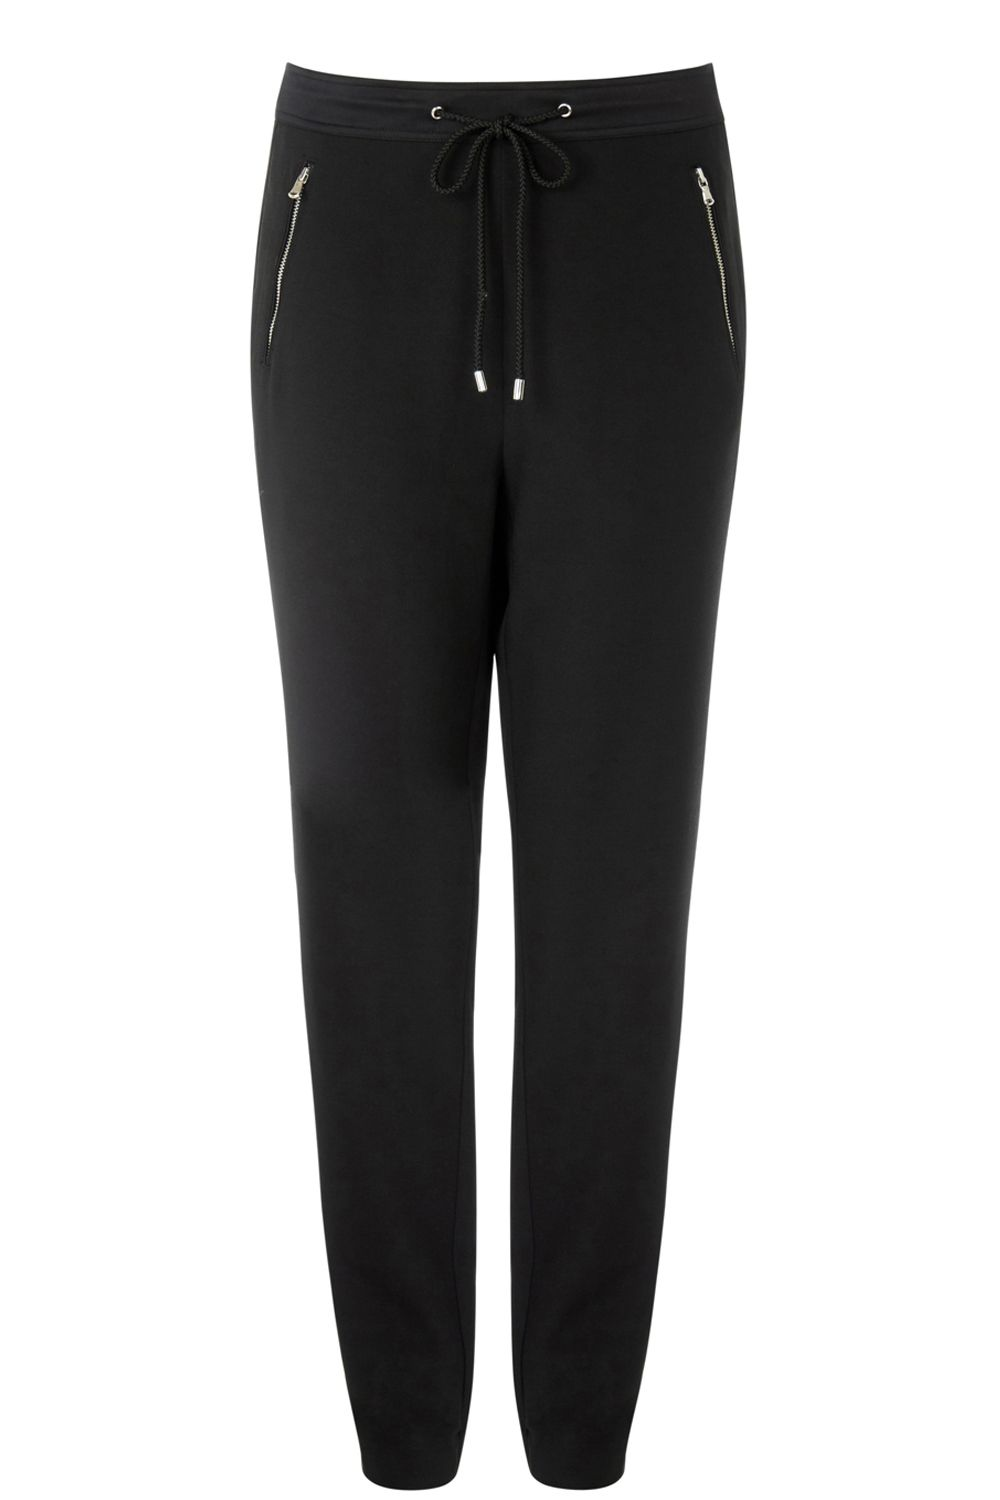 Oasis Zip Detail Cuff Trouser, Black